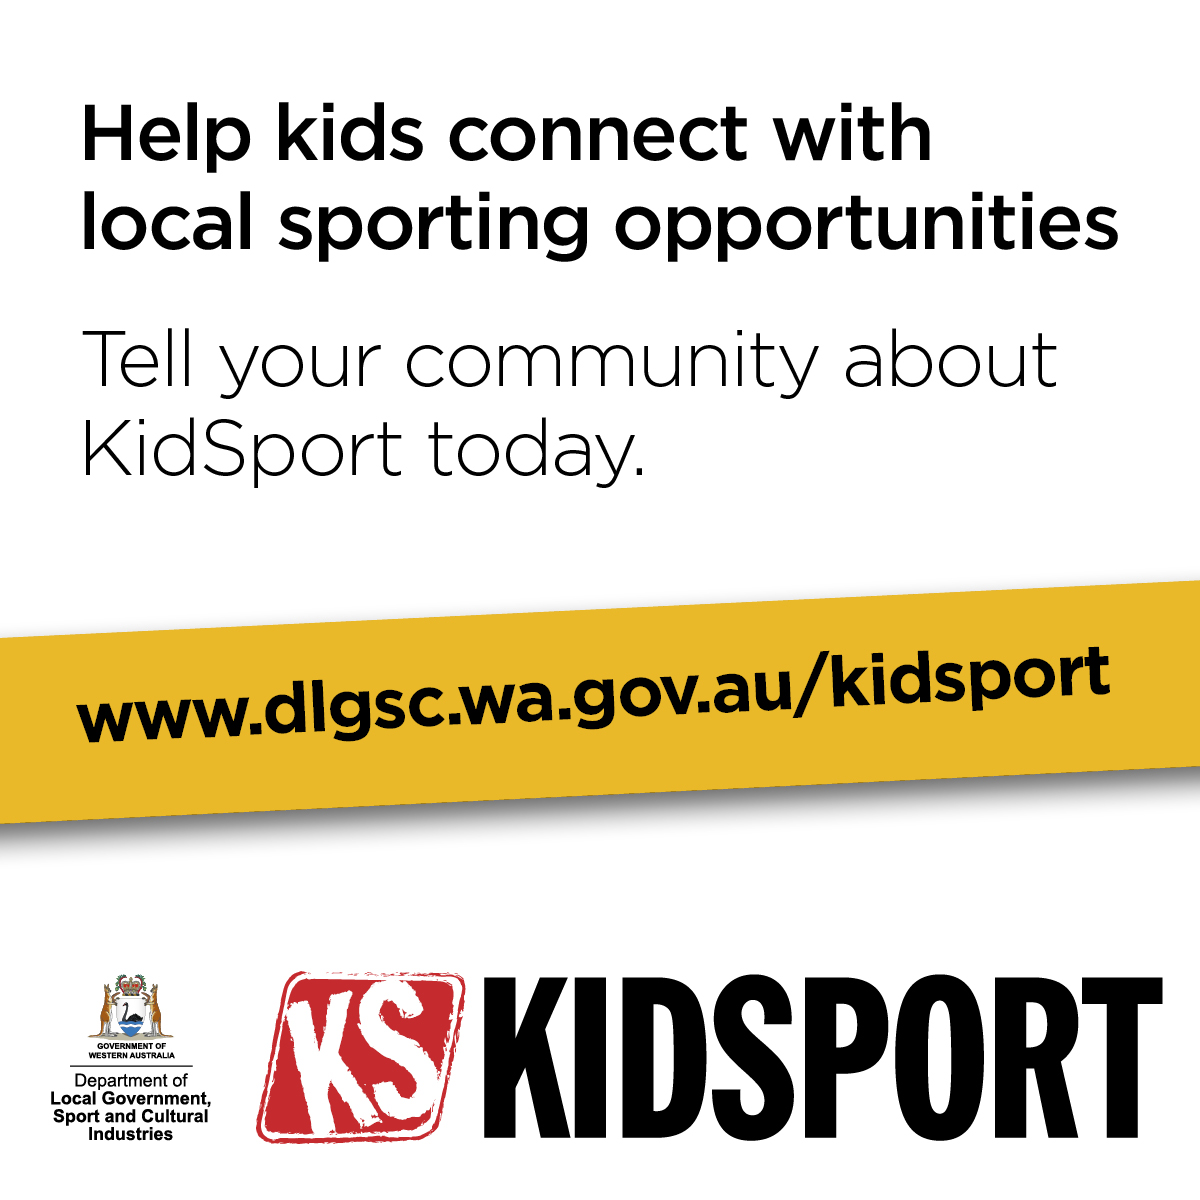 KidSport website image Help kids connect with local sporting opportunities words only